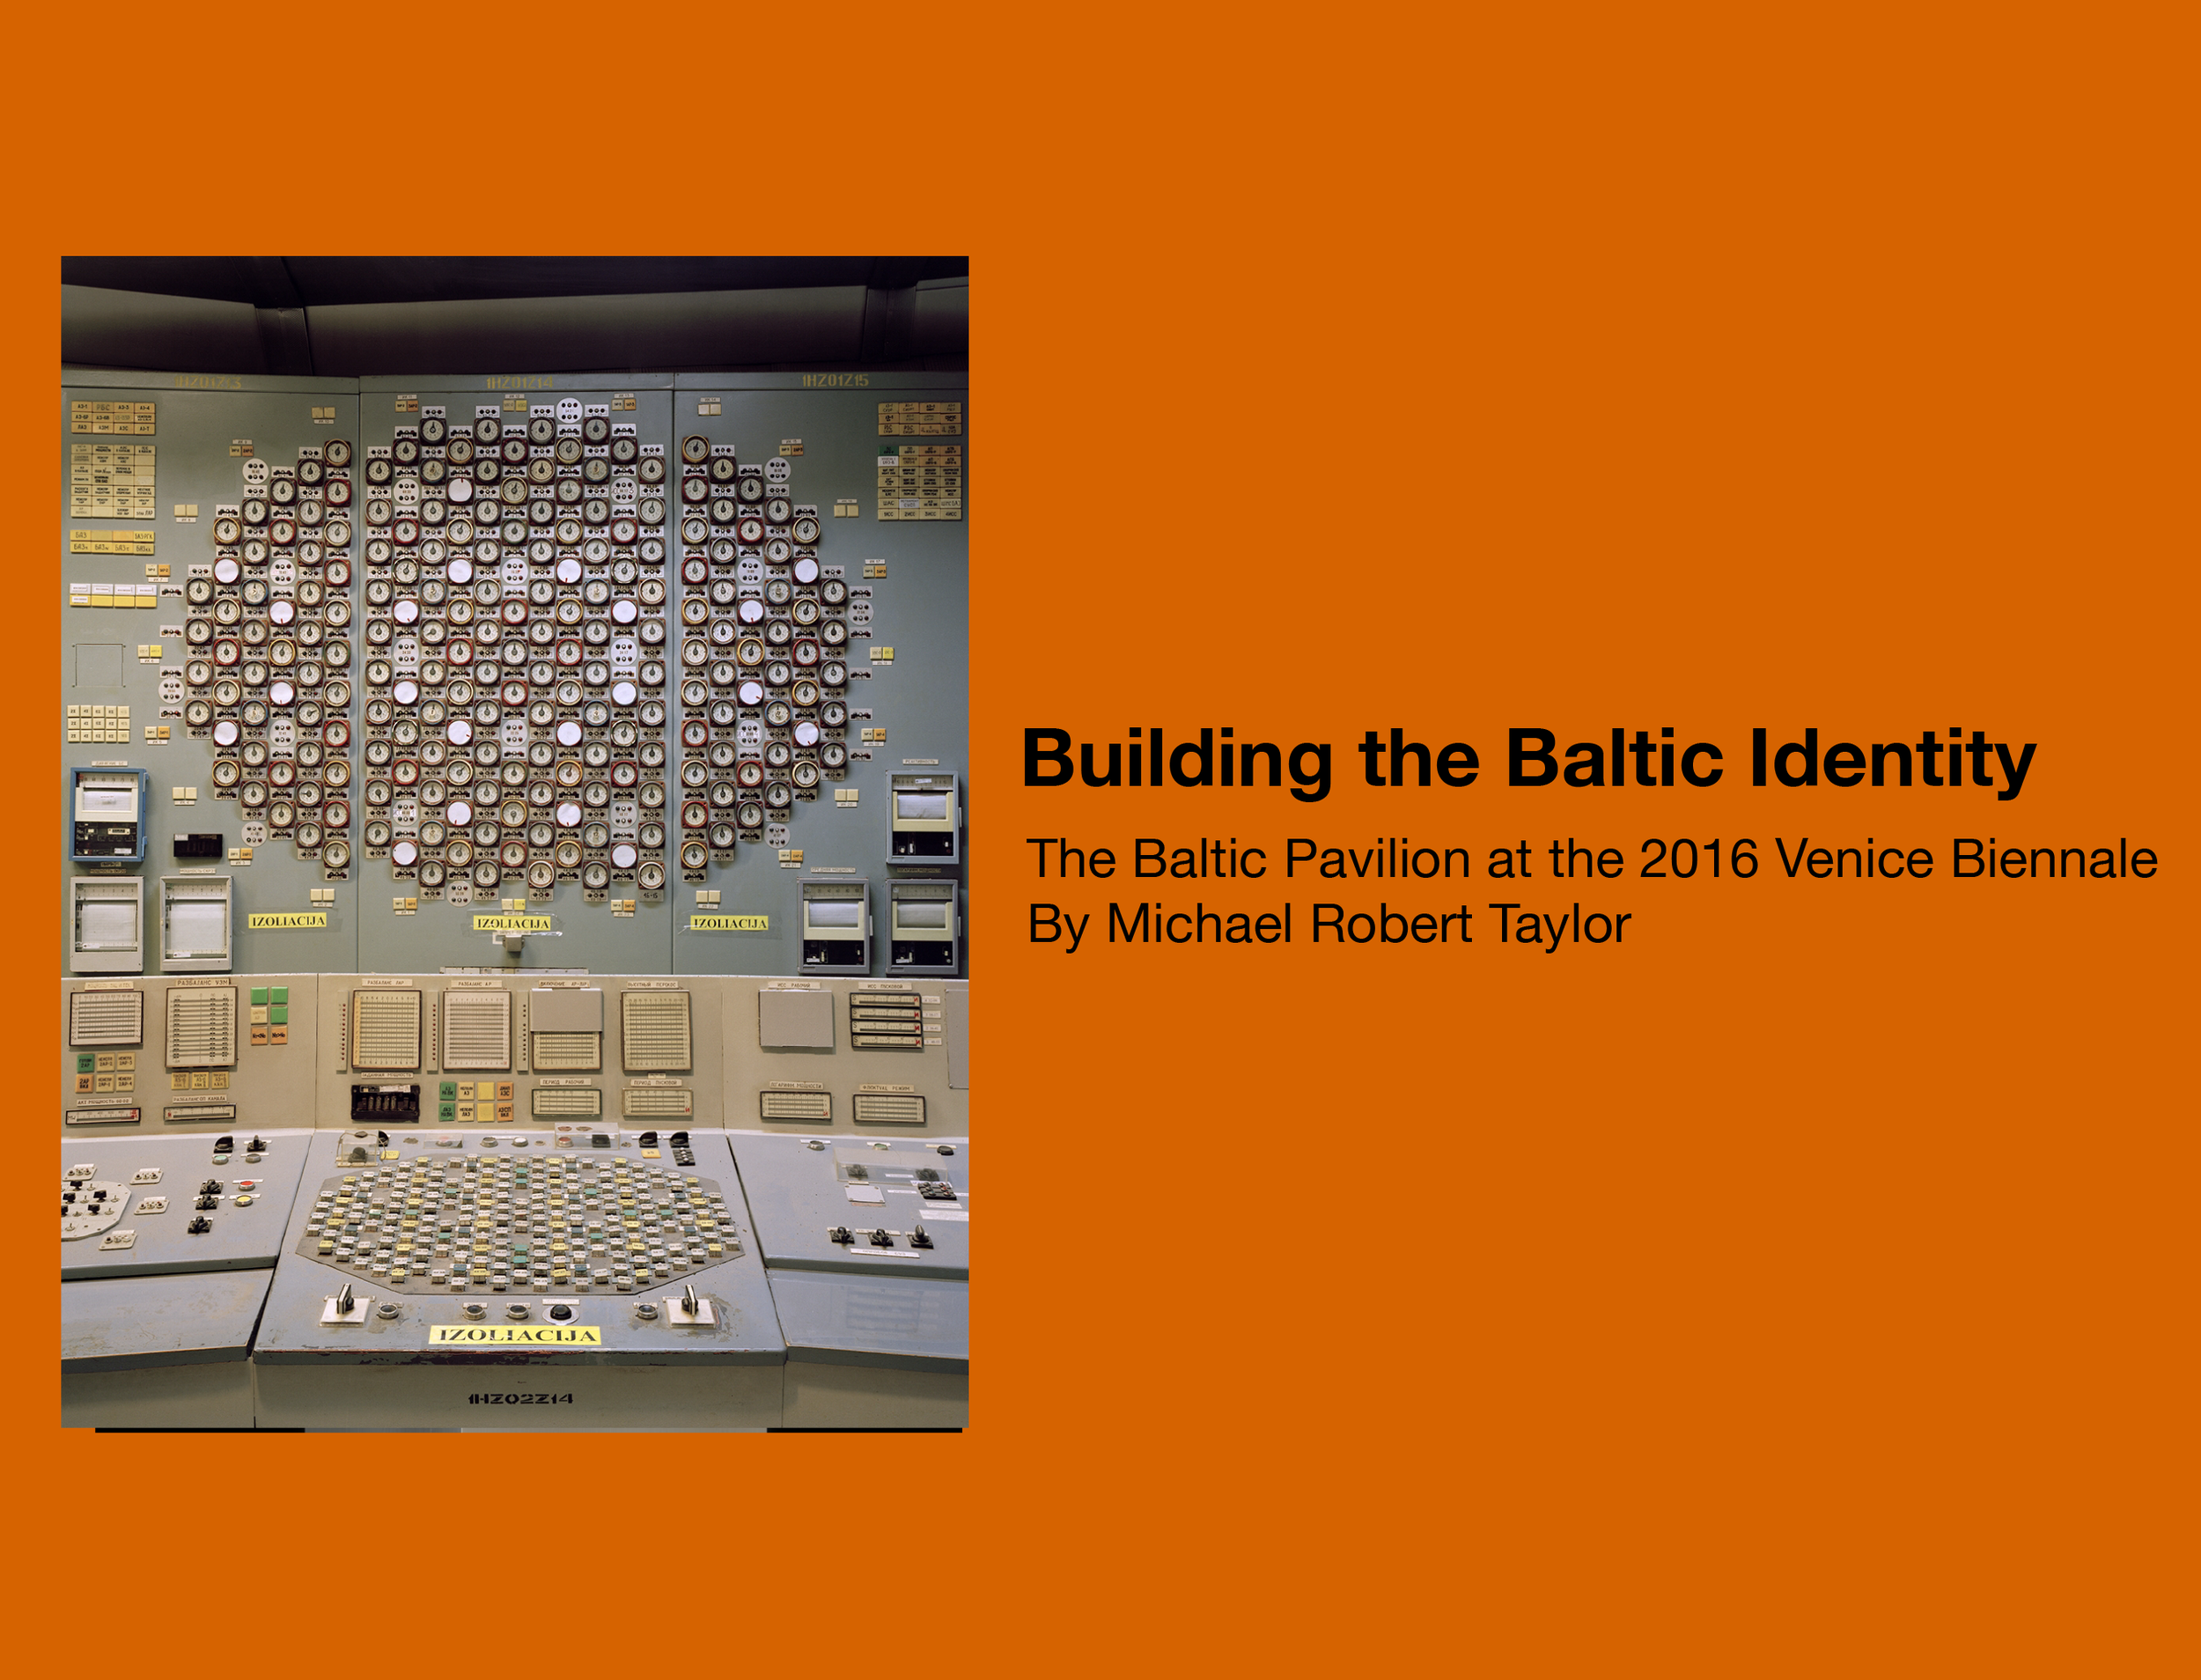 Building the Baltic Identity